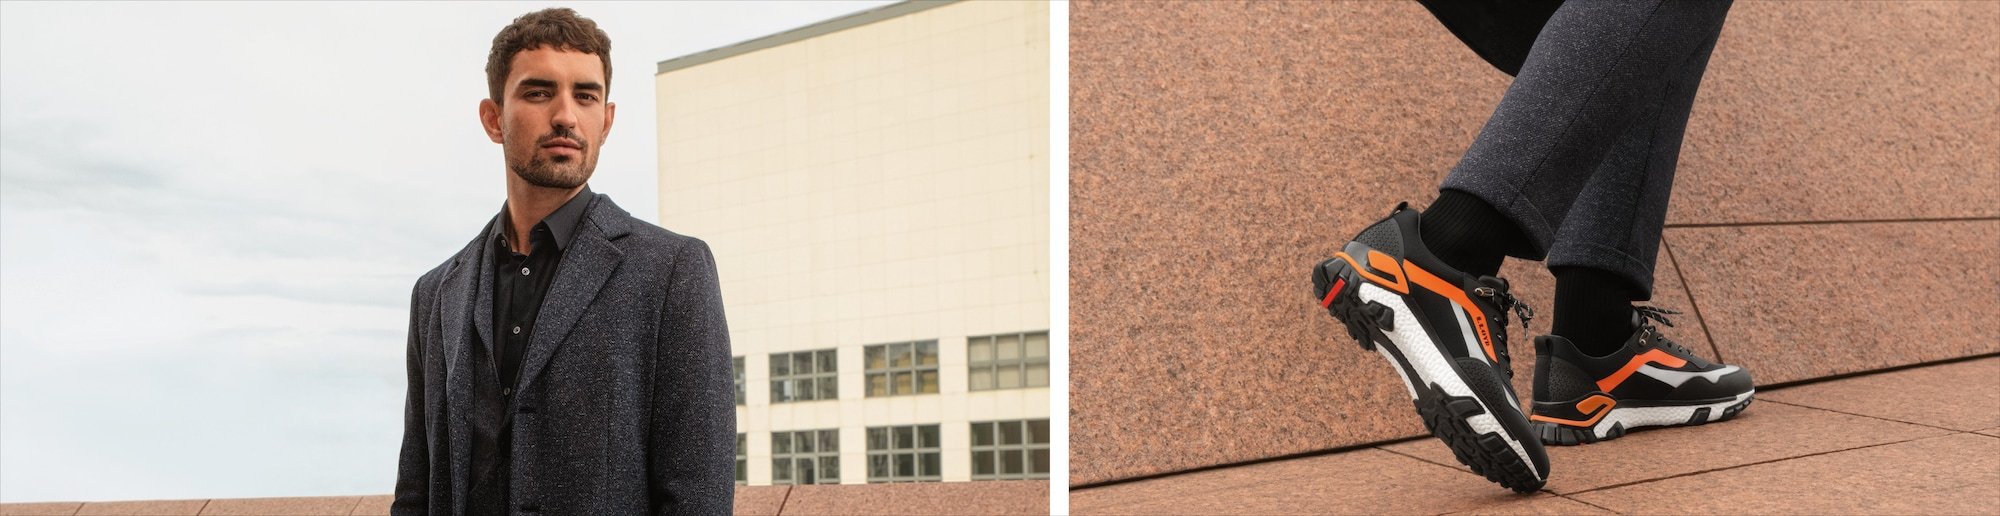 LLOYD SELECTED Merkenheader